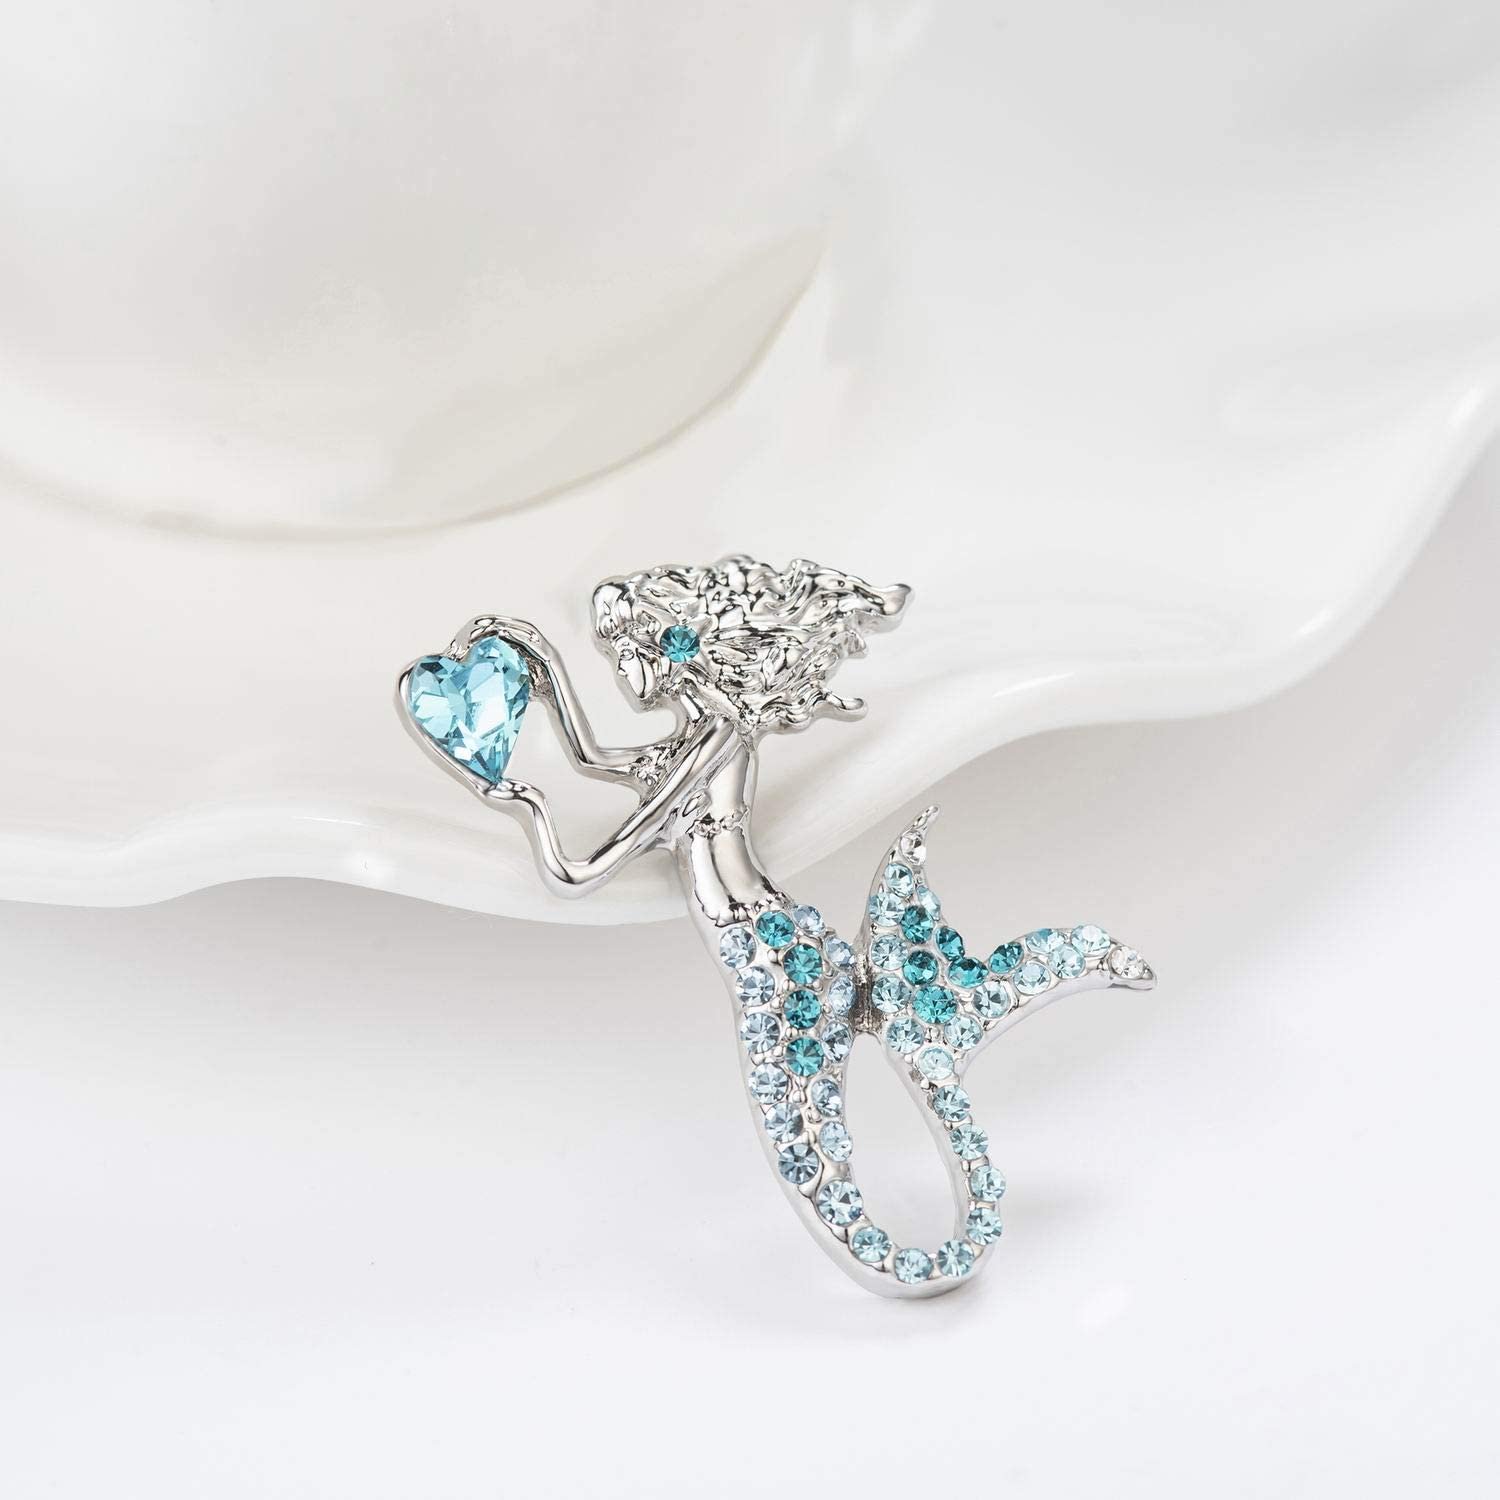 luomart Little Mermaid Brooch Pins for Girls,Birthstone Brooches Jewelry Gift Set for Kids Women Teens Children